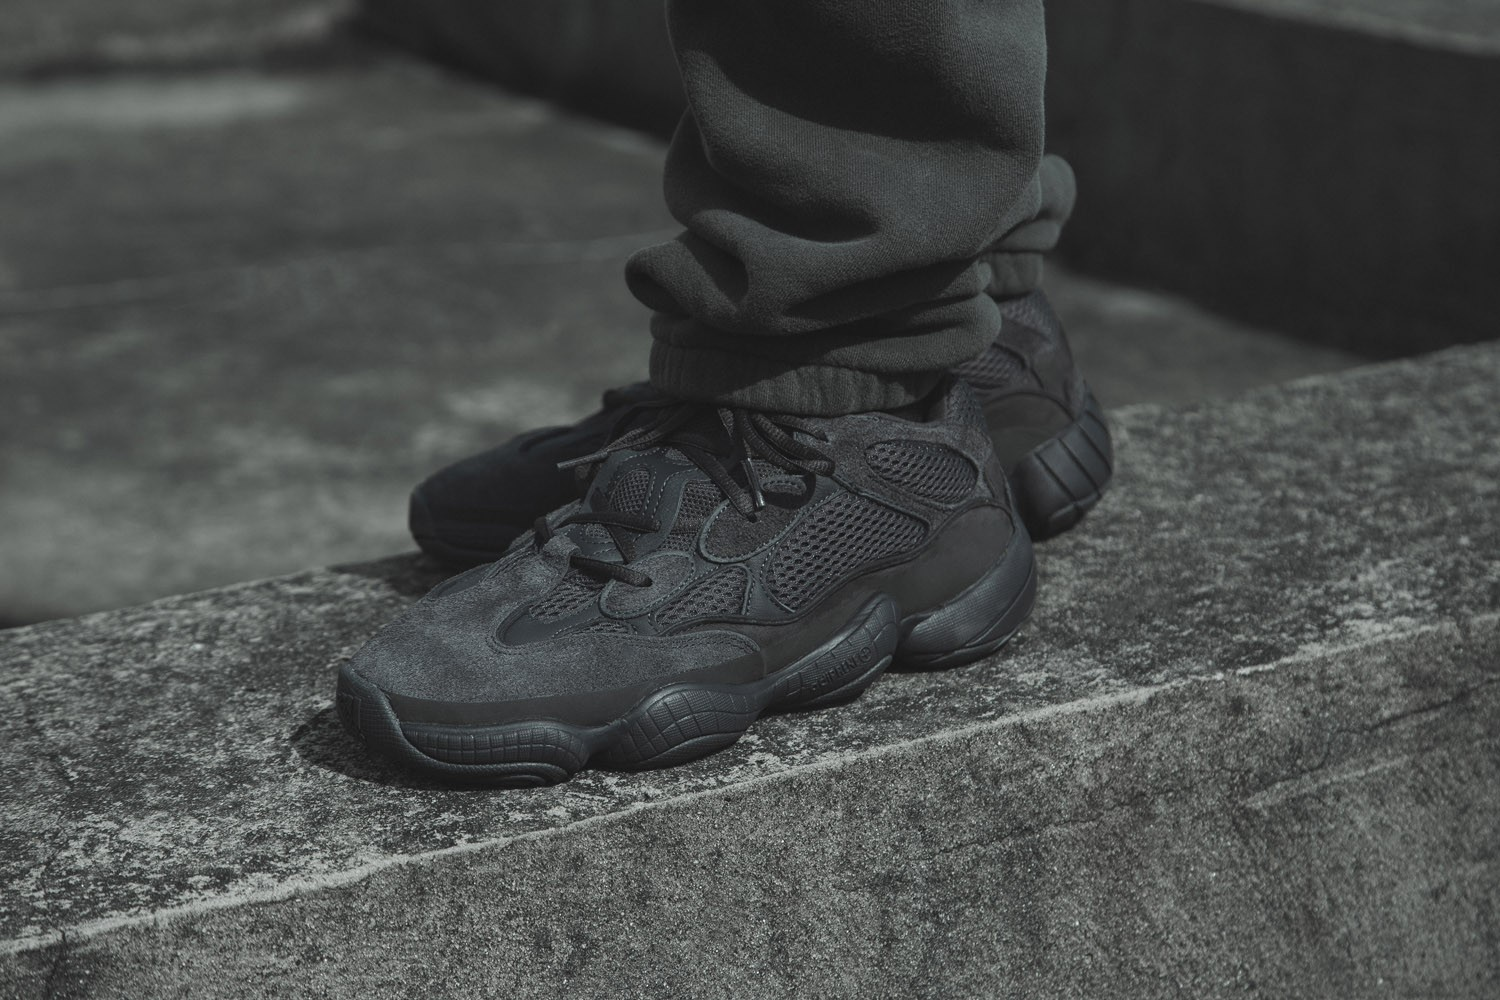 yeezy 500 black and white